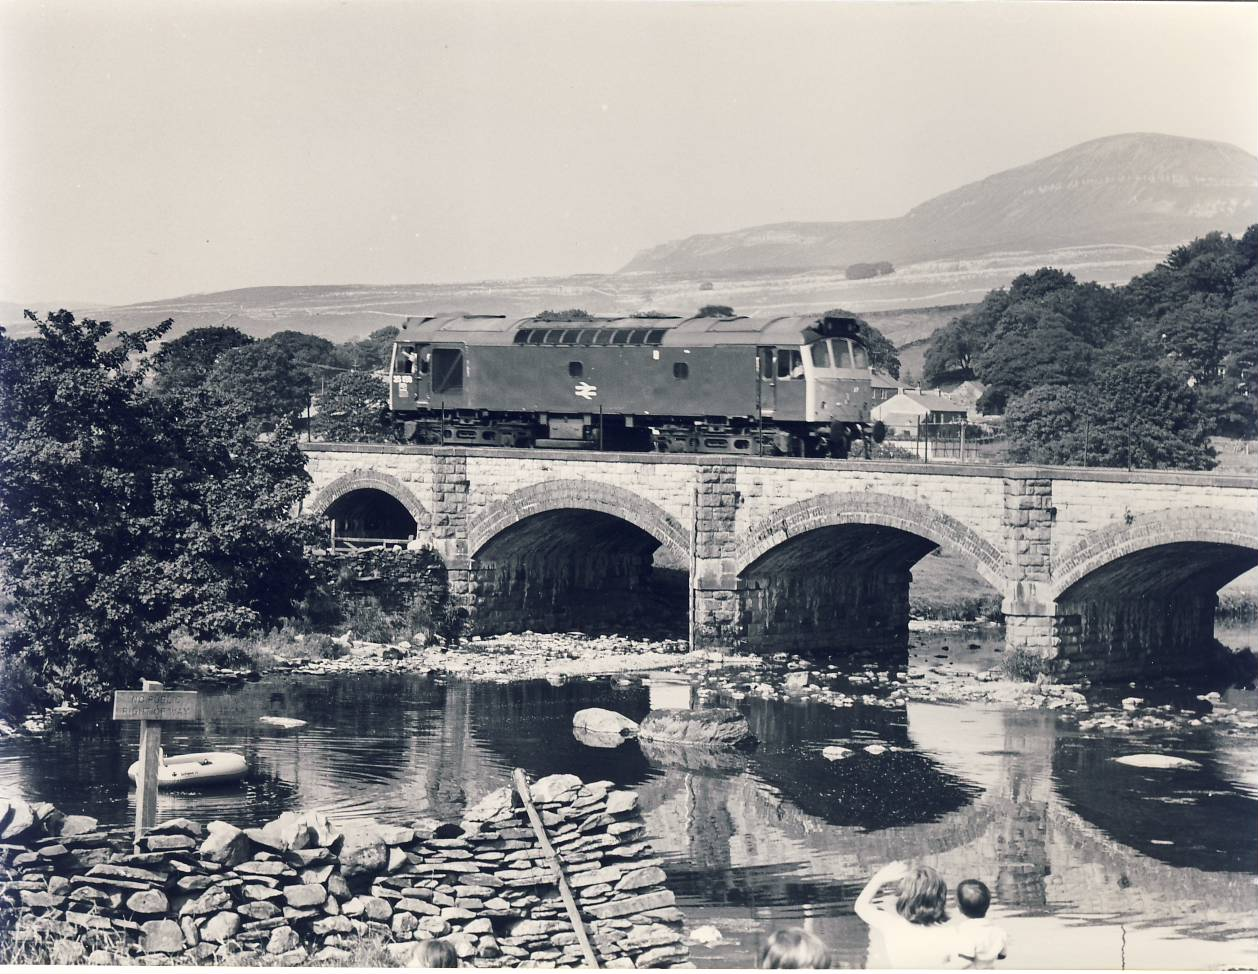 1982 HELWITH BRIDGE Settle Carlisle Line 25.158 Train Photo Ramona Sharman refSC142 Measure approx 6.5 x 8.5 inches / 16cm x 21cm - an original 'Ramona Sharman' black and white photographic print pre-owned item in very good condition. Details on reverse.